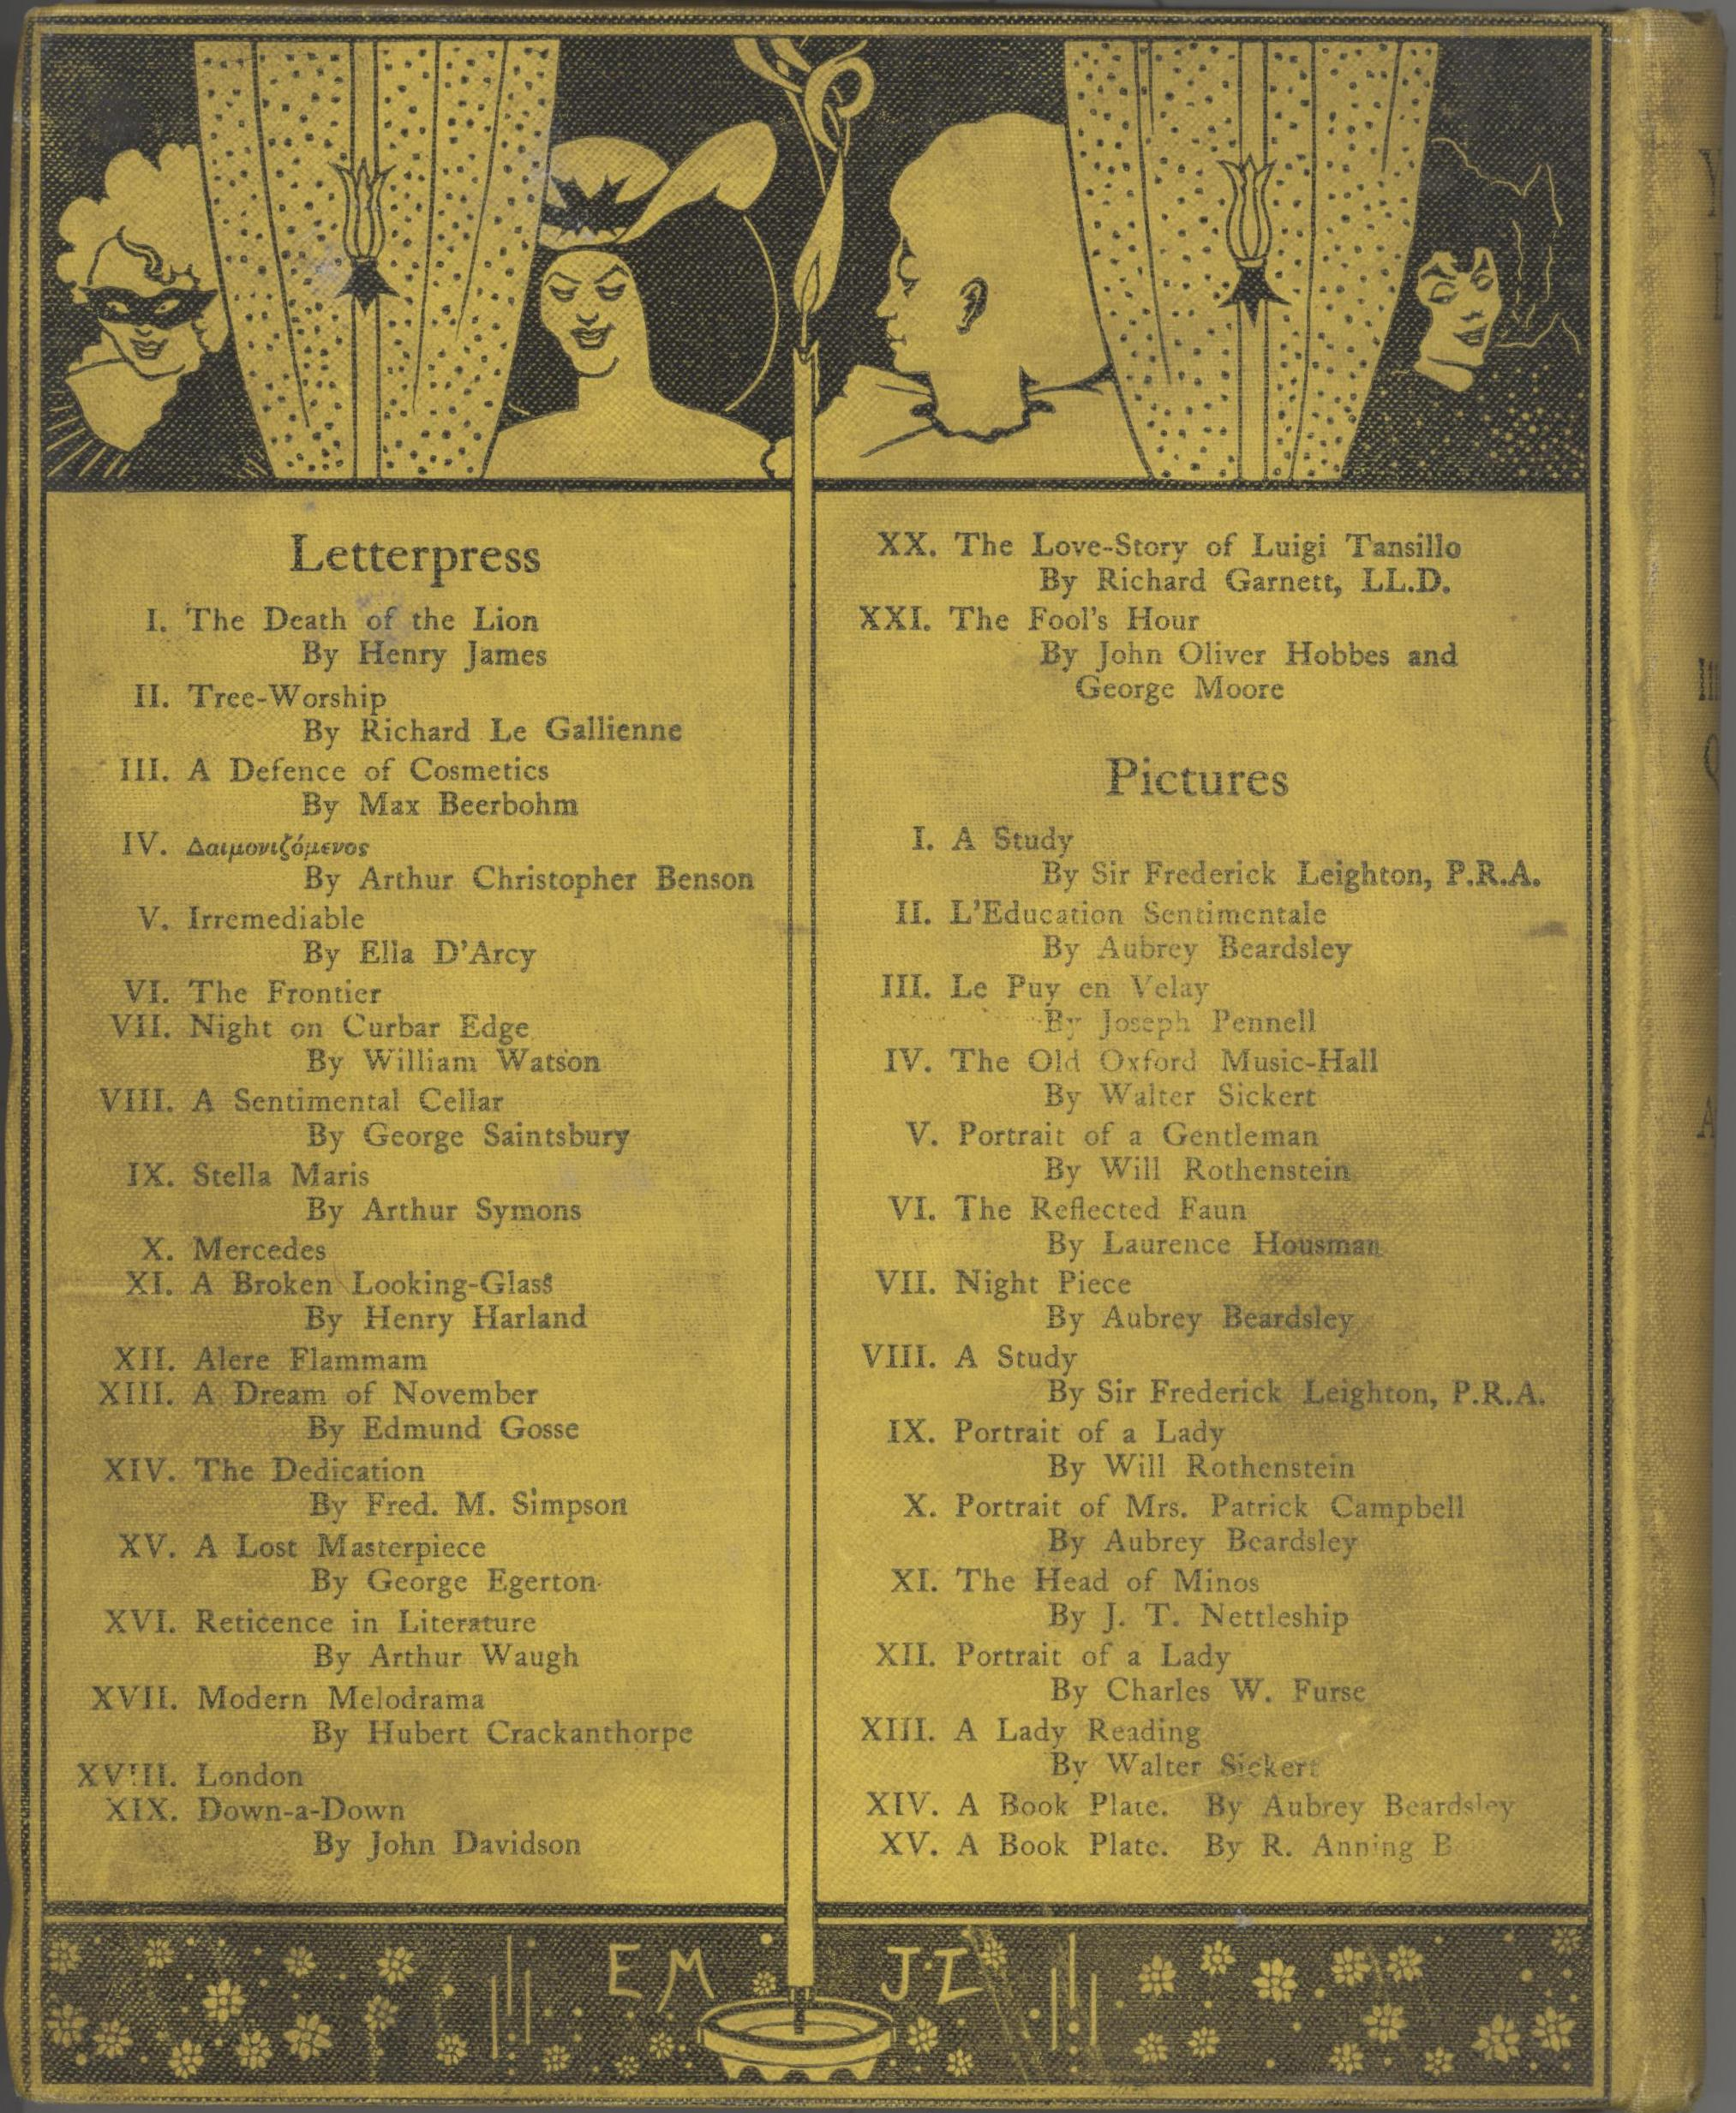 Back cover is divided vertically by a lit candle, which divides Letterpress list from Pictures List. Divided horizontally at top by black frame of curtained window. At left is a frontal torso of a bare-shouldered, smiling black-haired woman in large hat with bow; at centre, torso of a harlequin in profile, with large ruff on neck; behind curtain at right, a 3/4 view torso of woman in black, with black hair, smiling with downcast eyes, facing right. Candelabra at far left and middle right. Curtains are polka-dot.